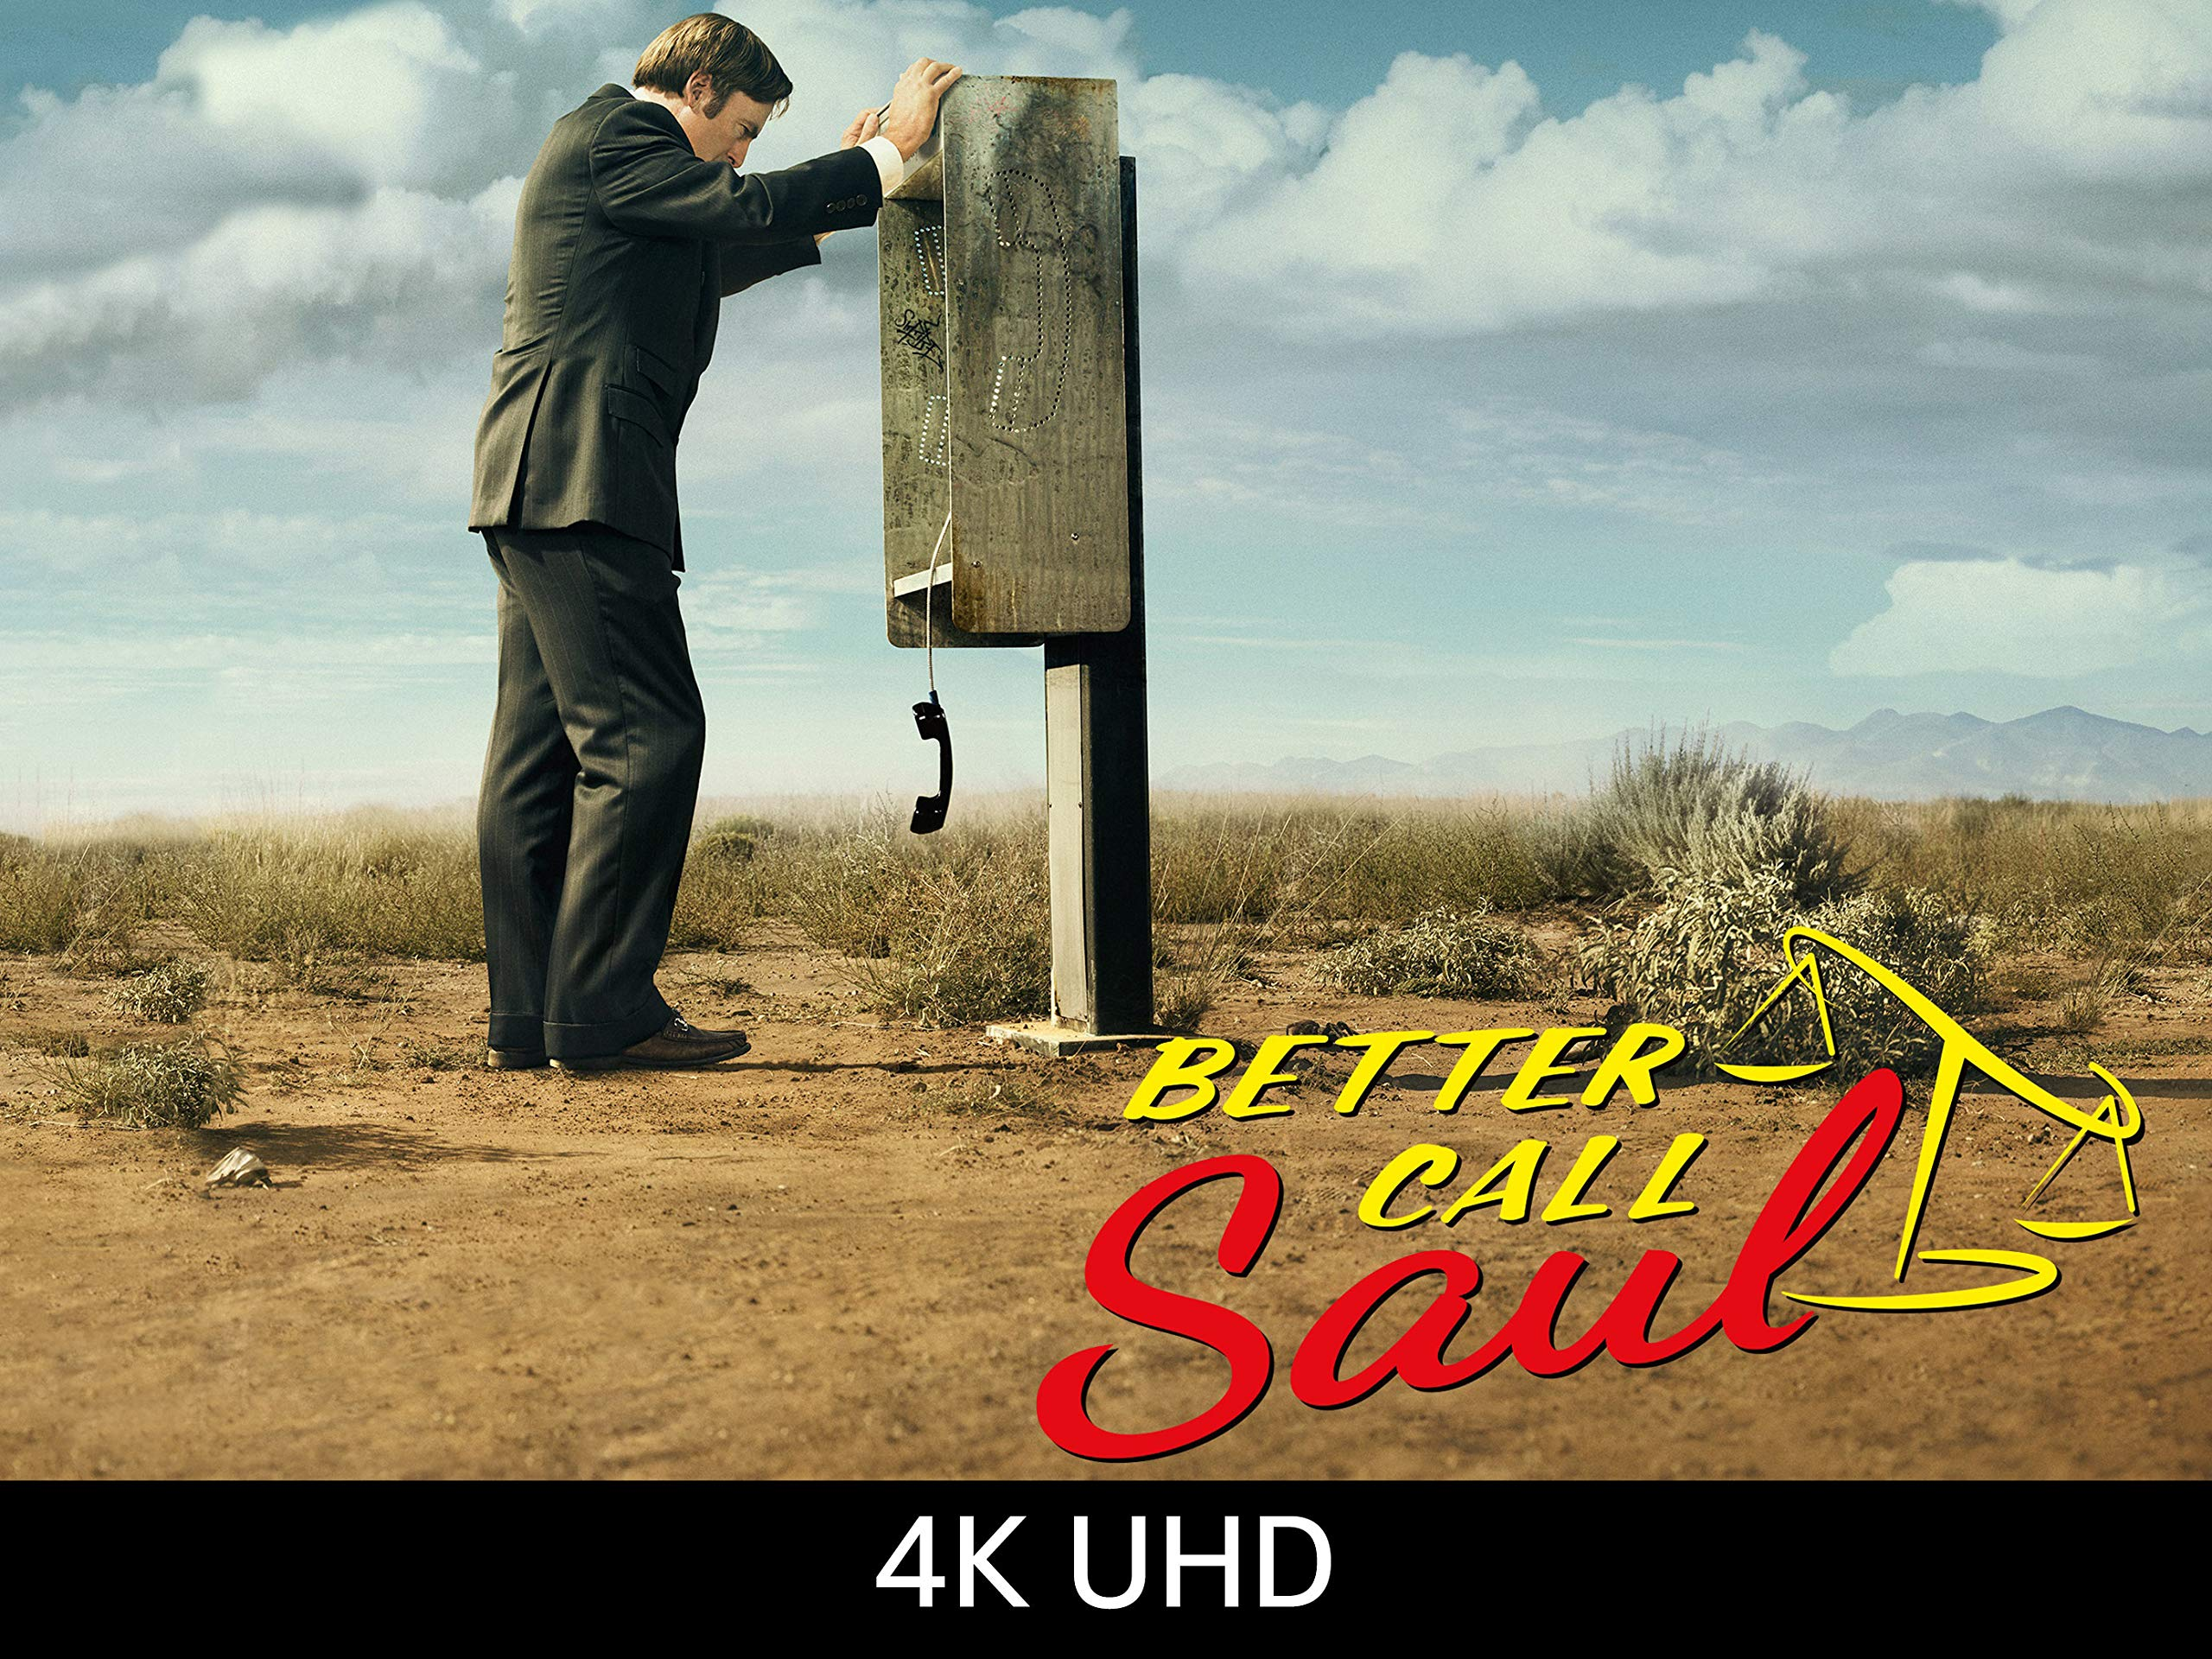 Amazoncom Better Call Saul Season 3 4k Uhd Gennifer